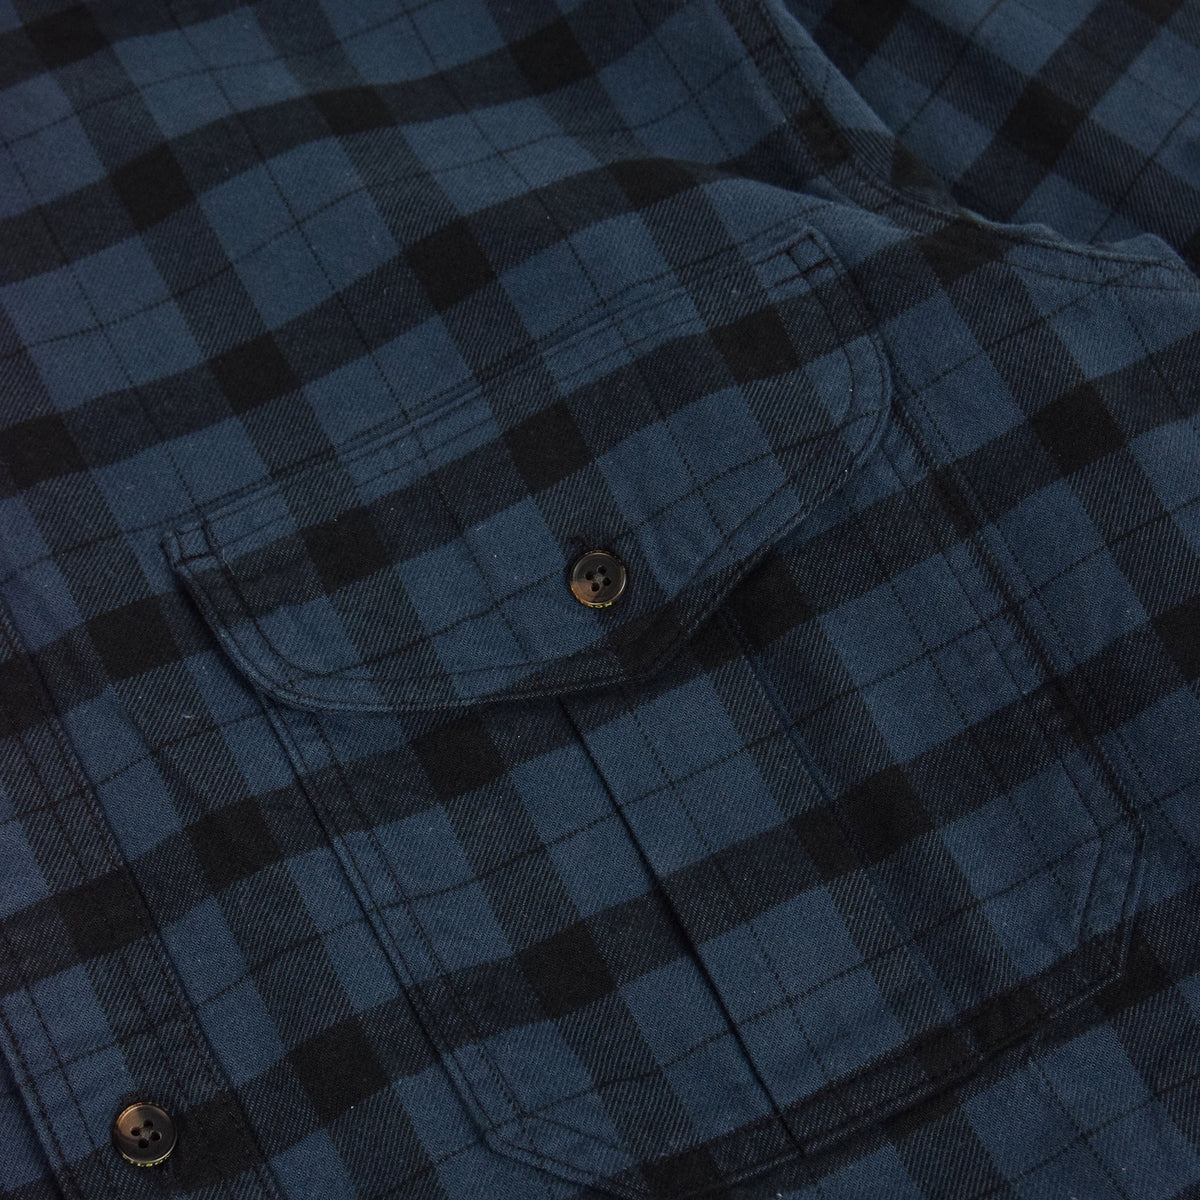 Filson Alaskan Guide Cotton Flannel Shirt Blue/Black Top Pocket